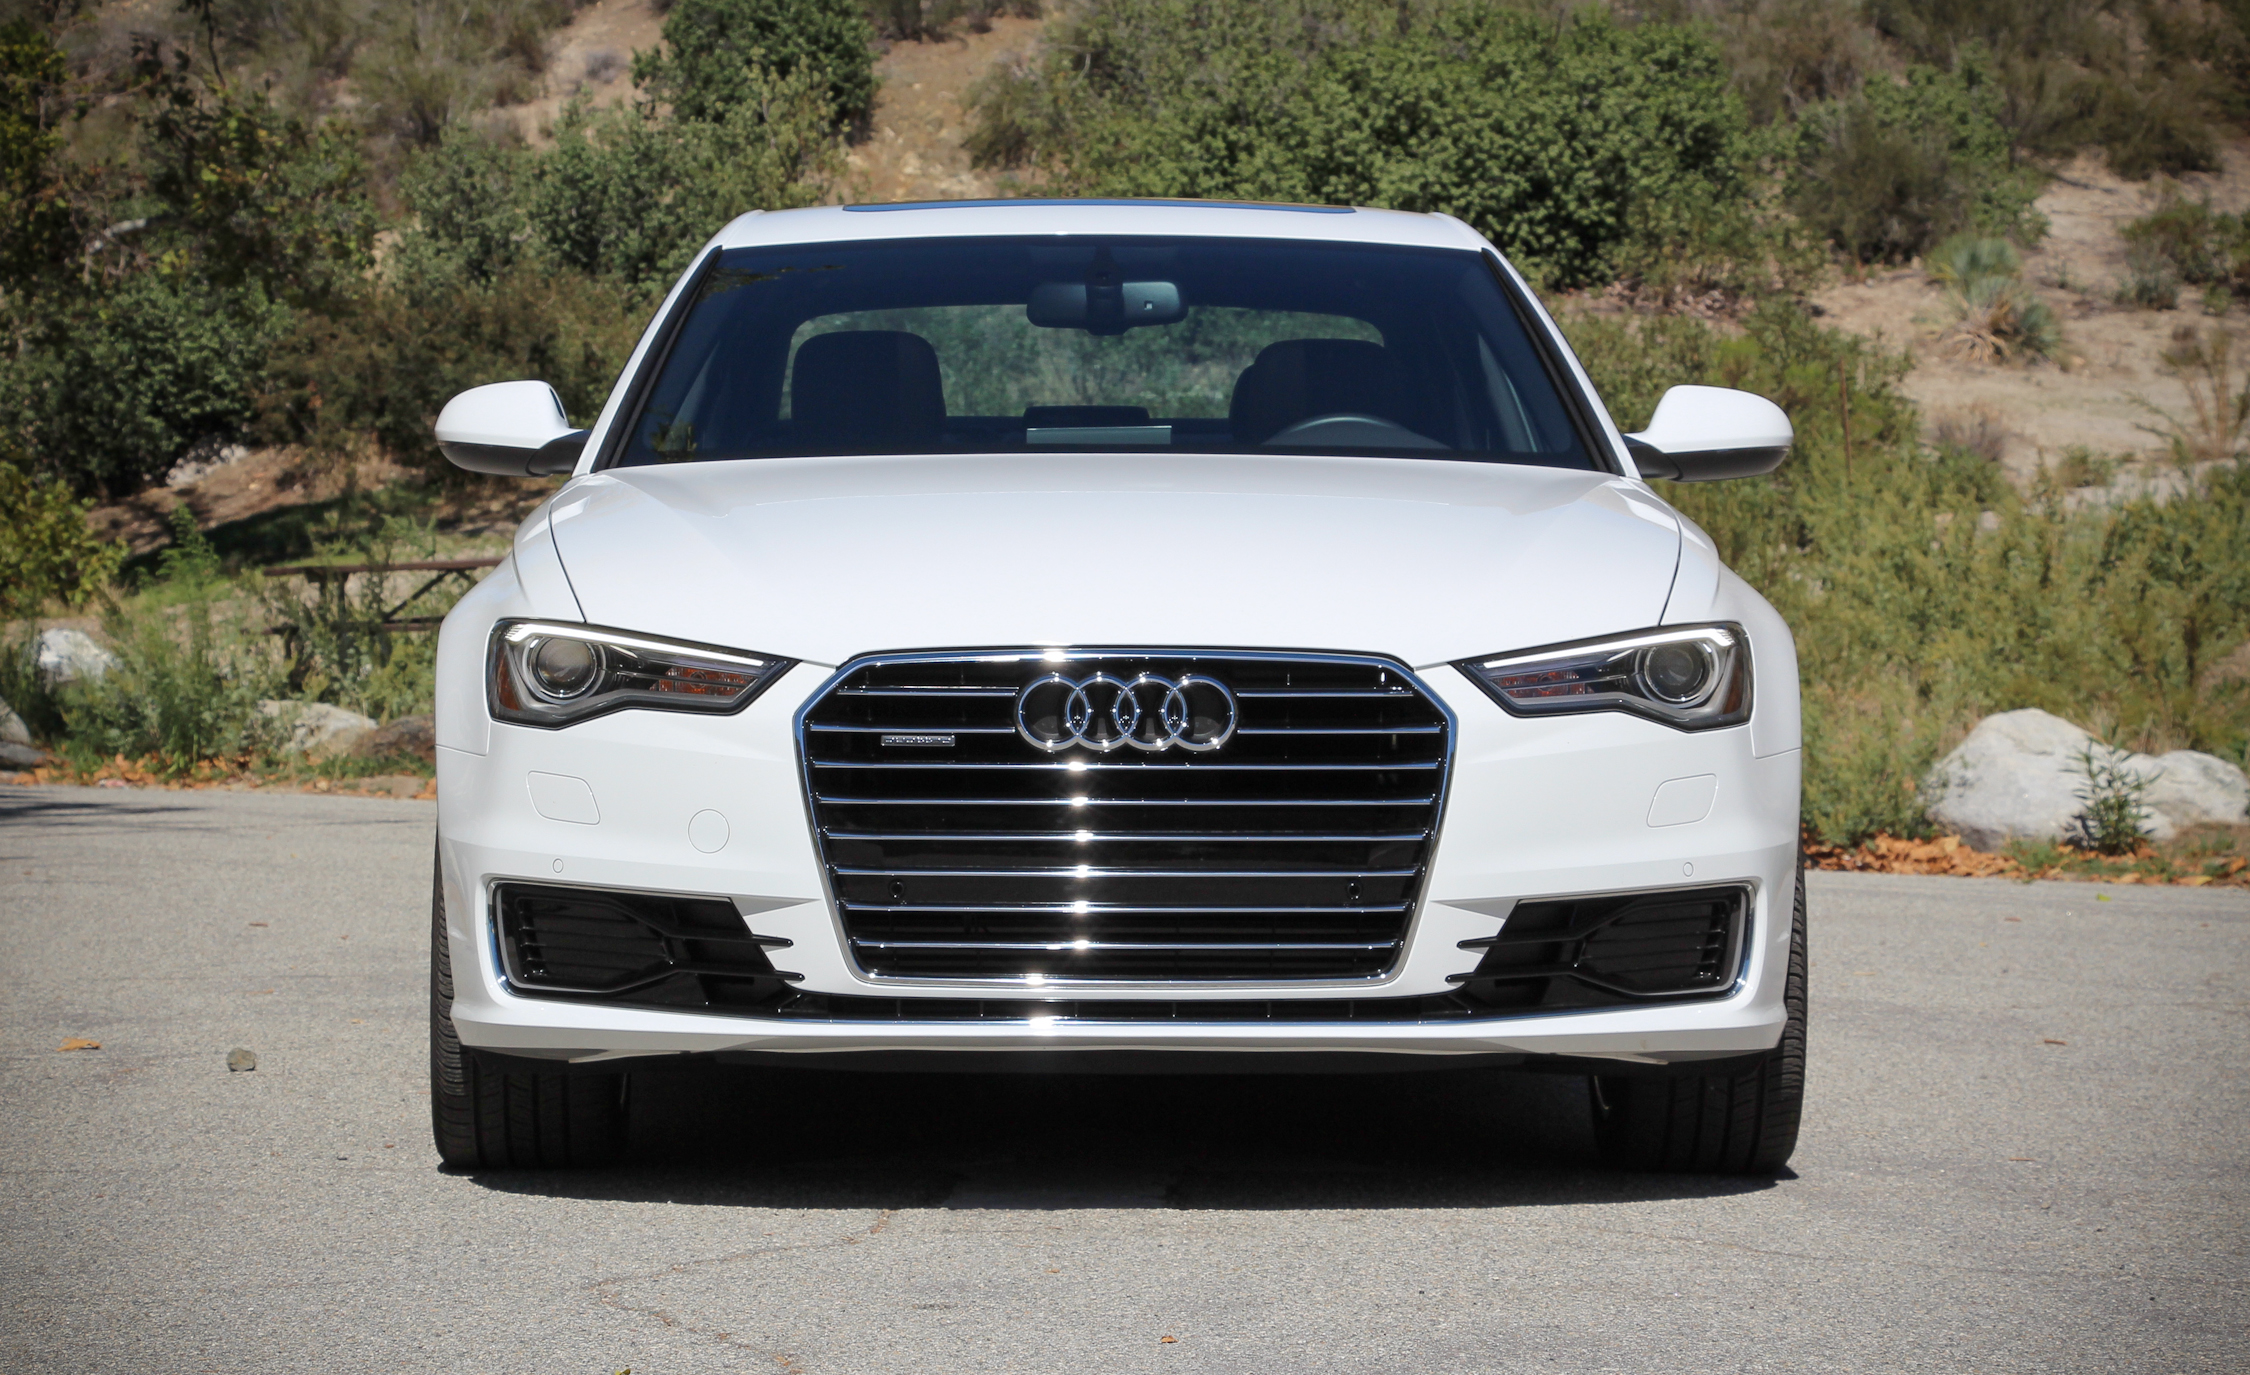 2016 Audi A6 (View 36 of 39)